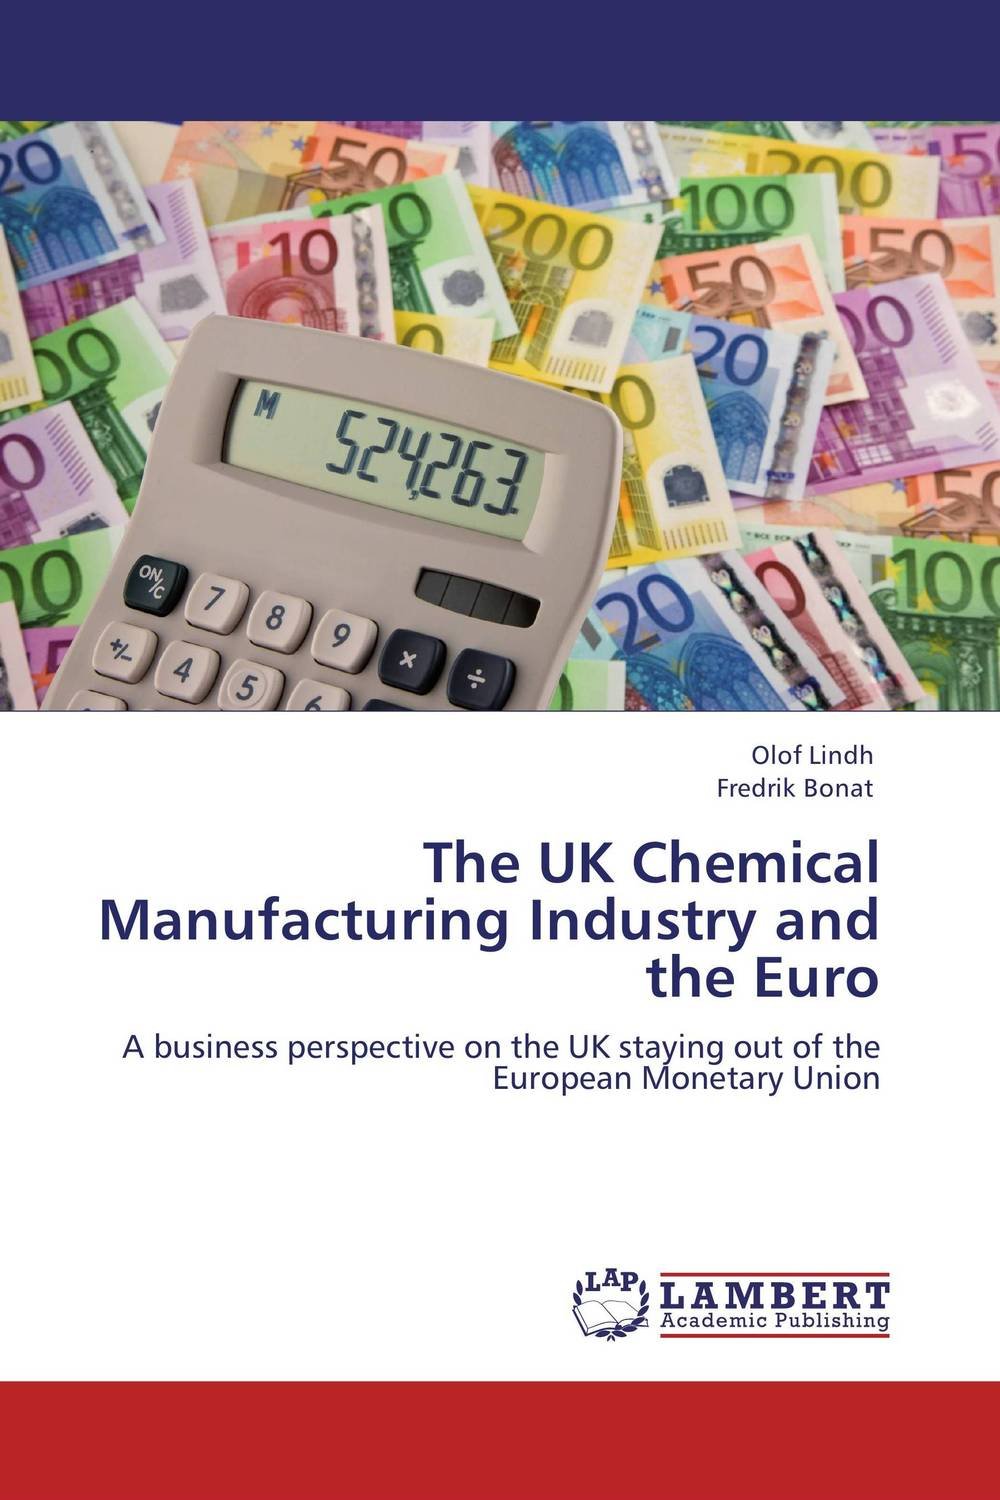 The UK Chemical Manufacturing Industry and the Euro uk fishing industry